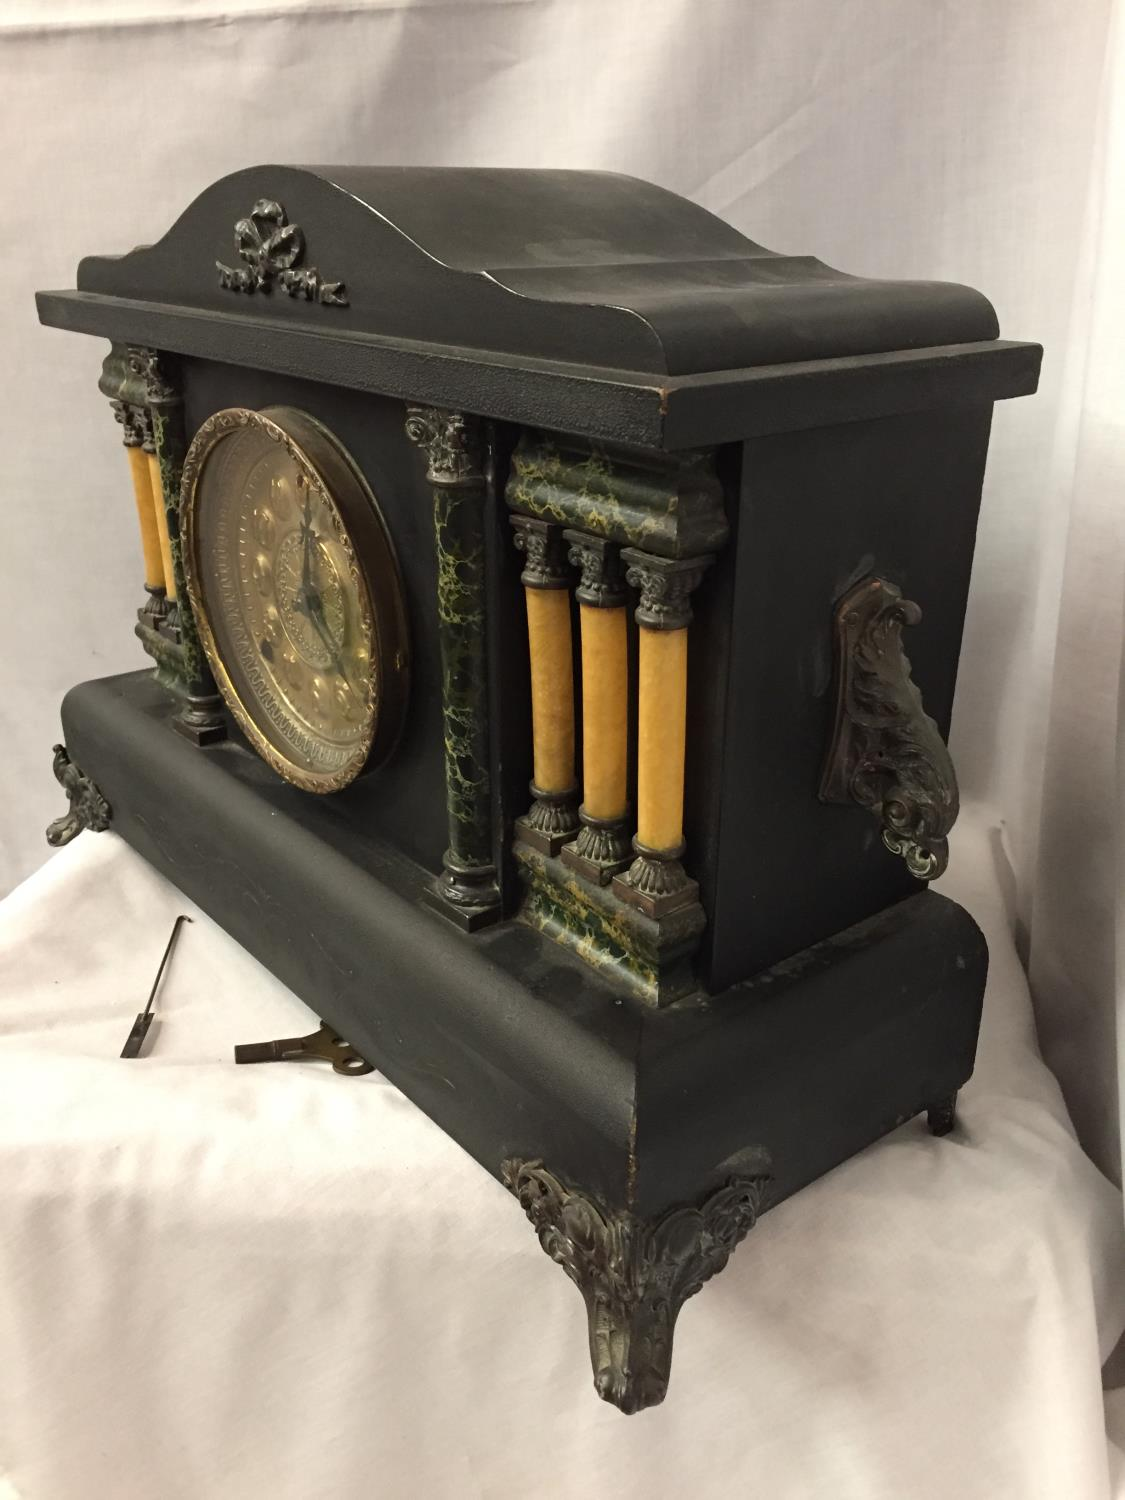 A VICTORIAN EIGHT DAY CATHEDRAL GONG EBONISED MANTEL CLOCK BY THE SESSIONS CLOCK CO. - Image 3 of 6